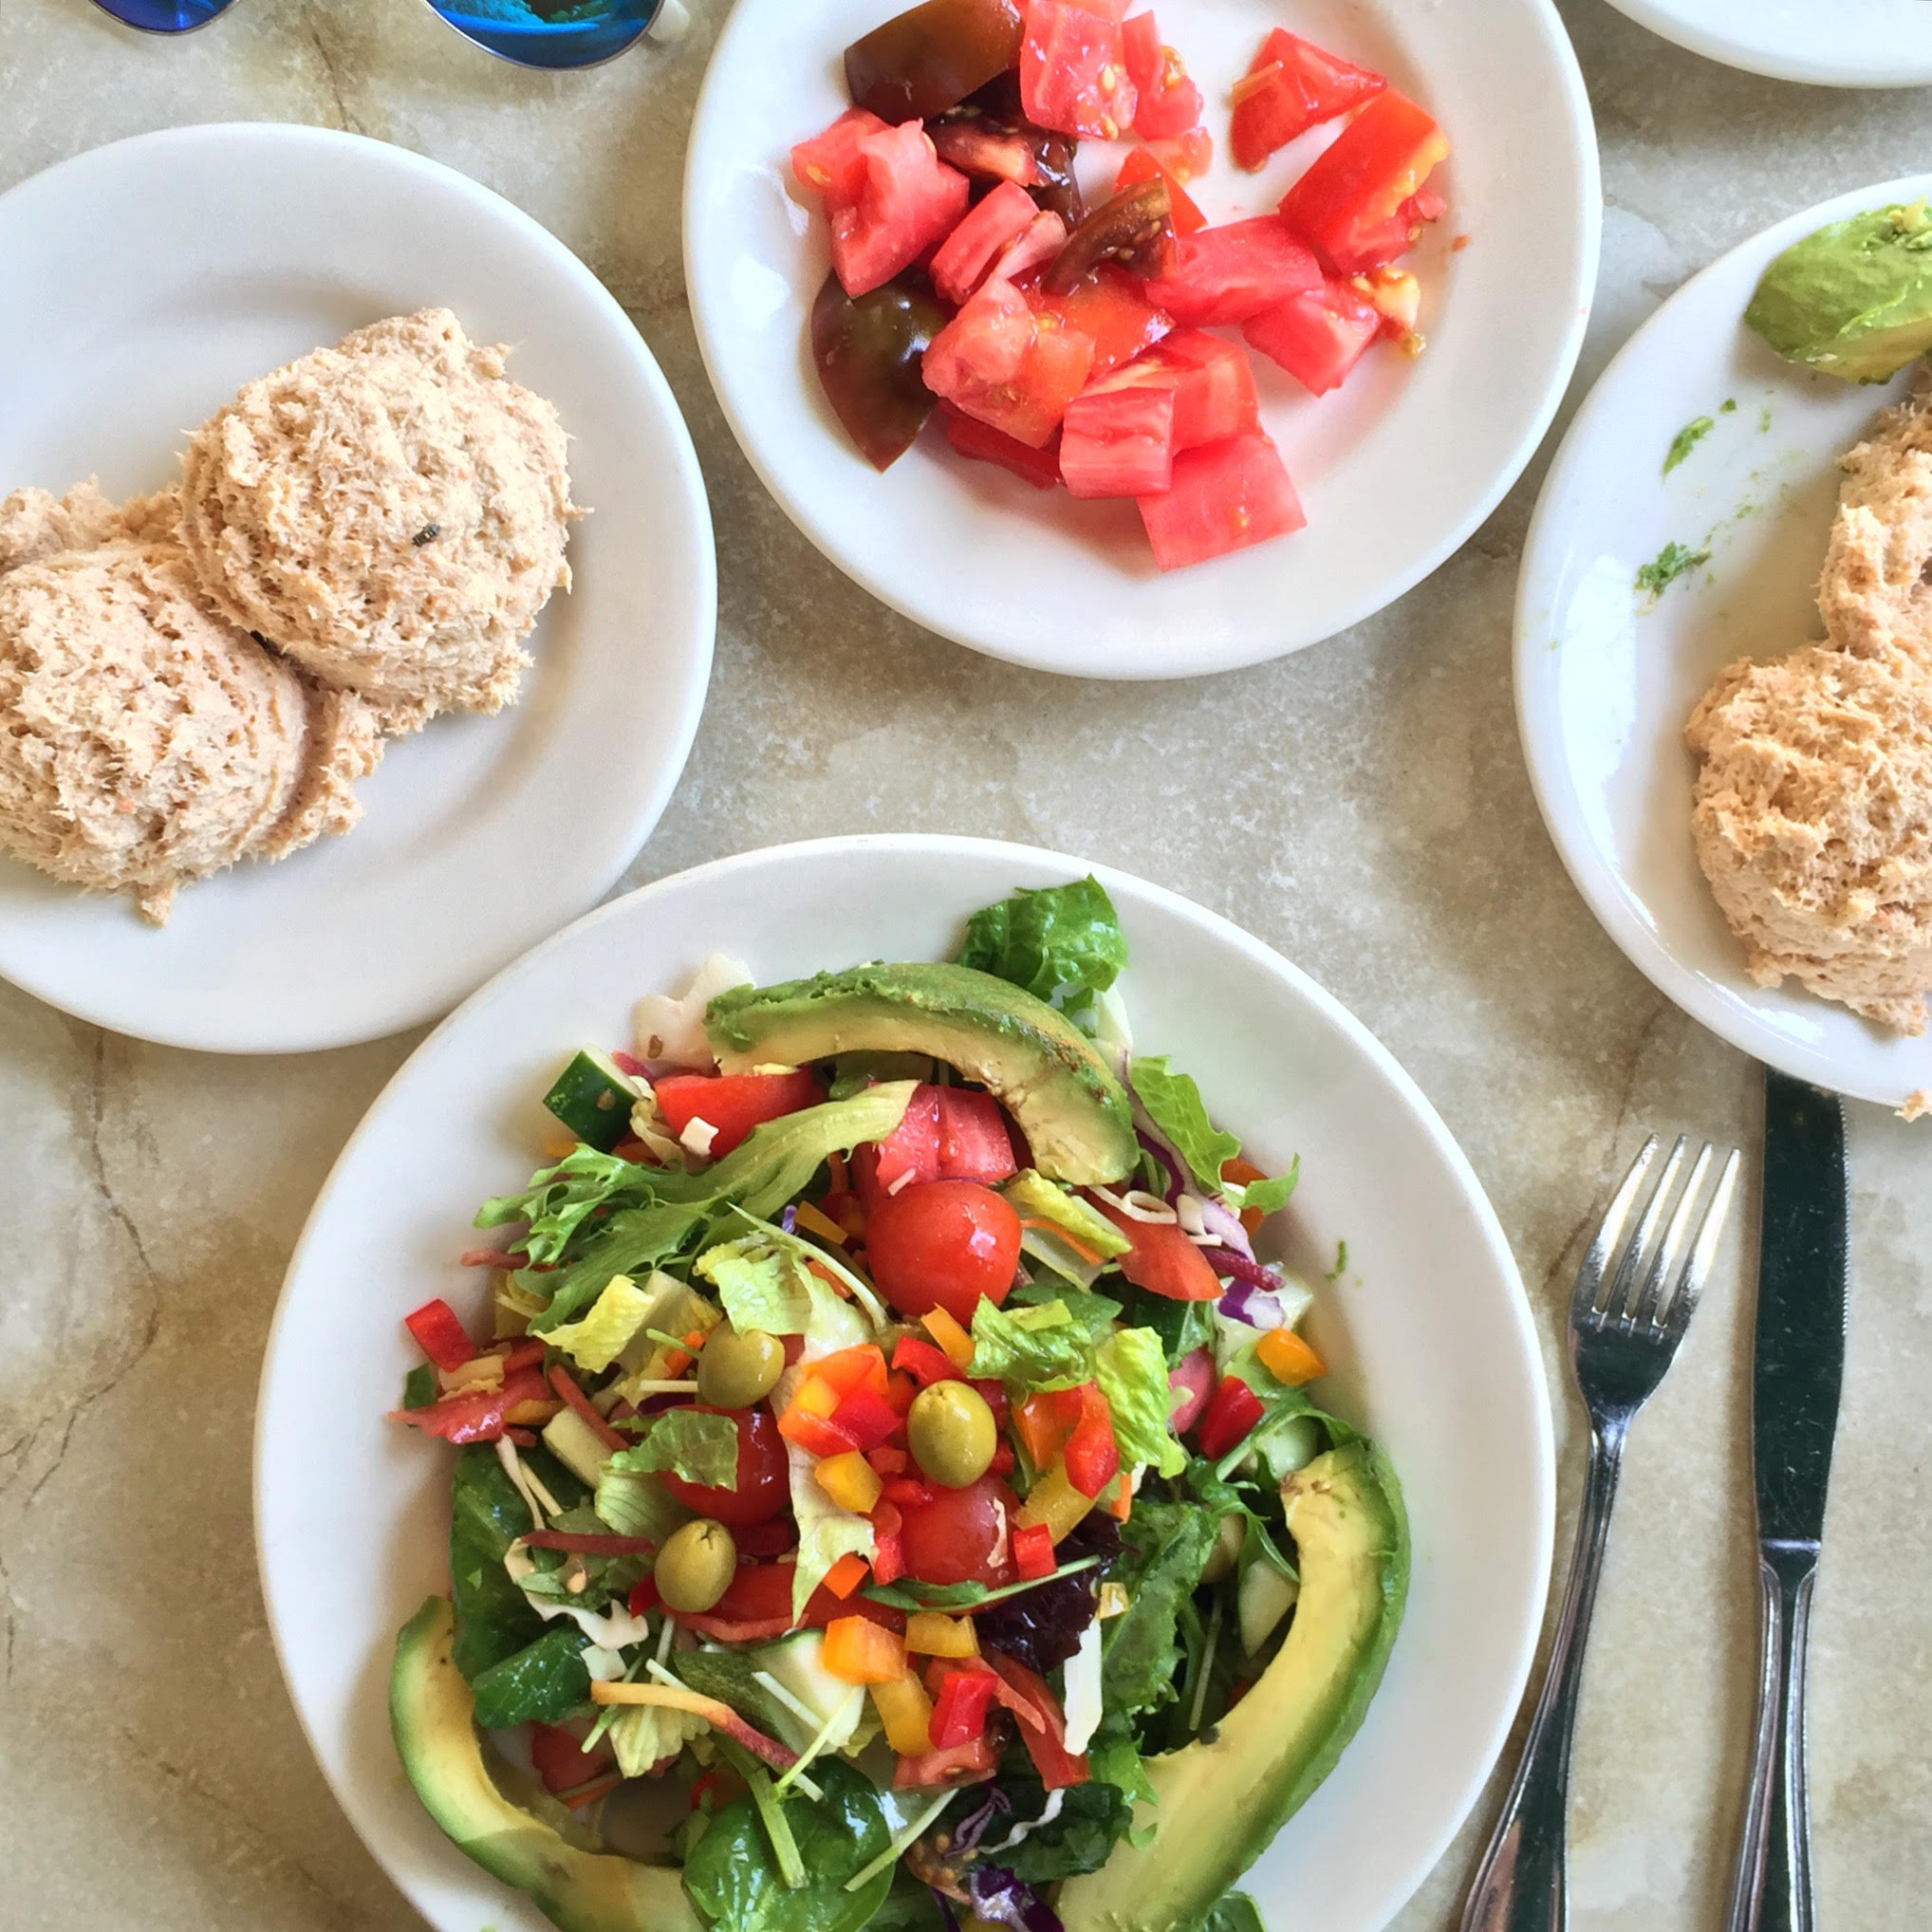 green salad with vegetables, tuna, and tomatoes